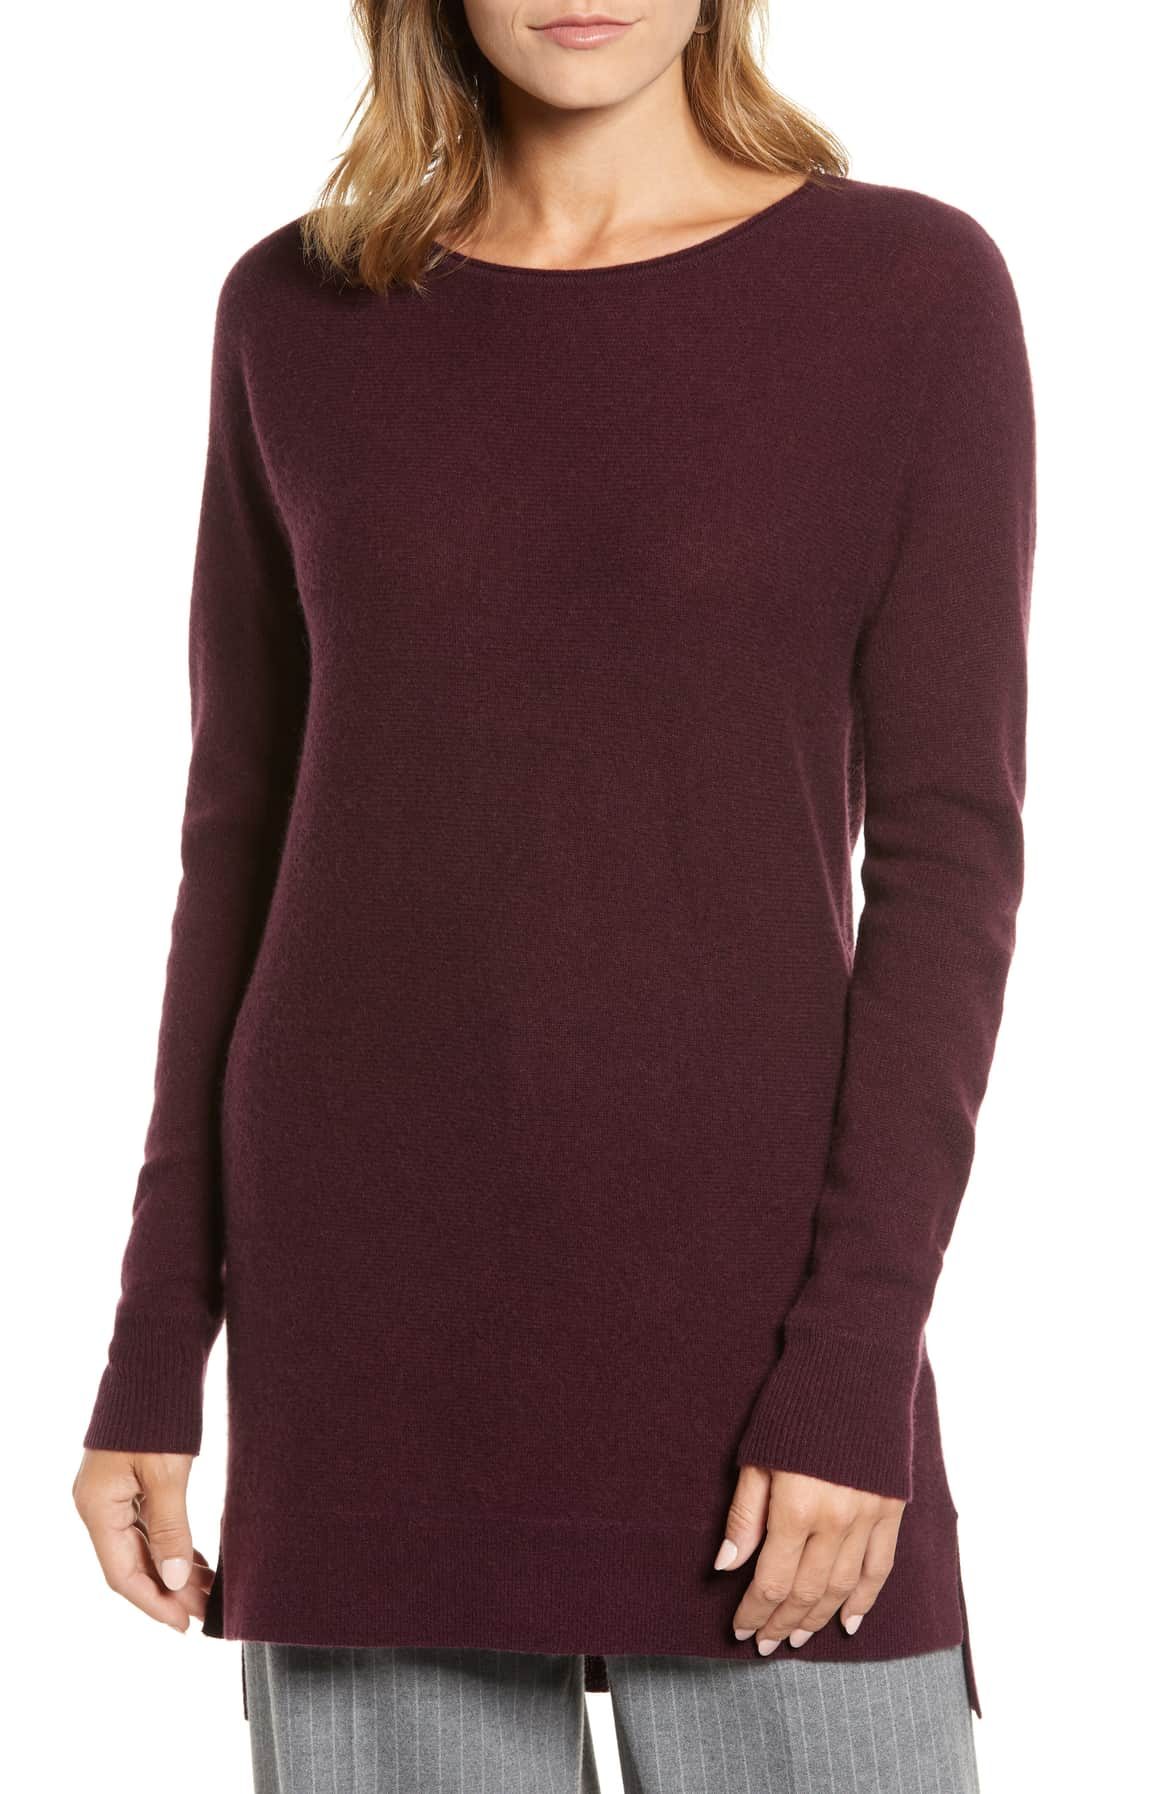 This On-Sale Cashmere Wool Sweater Is a Must-Have for Fall